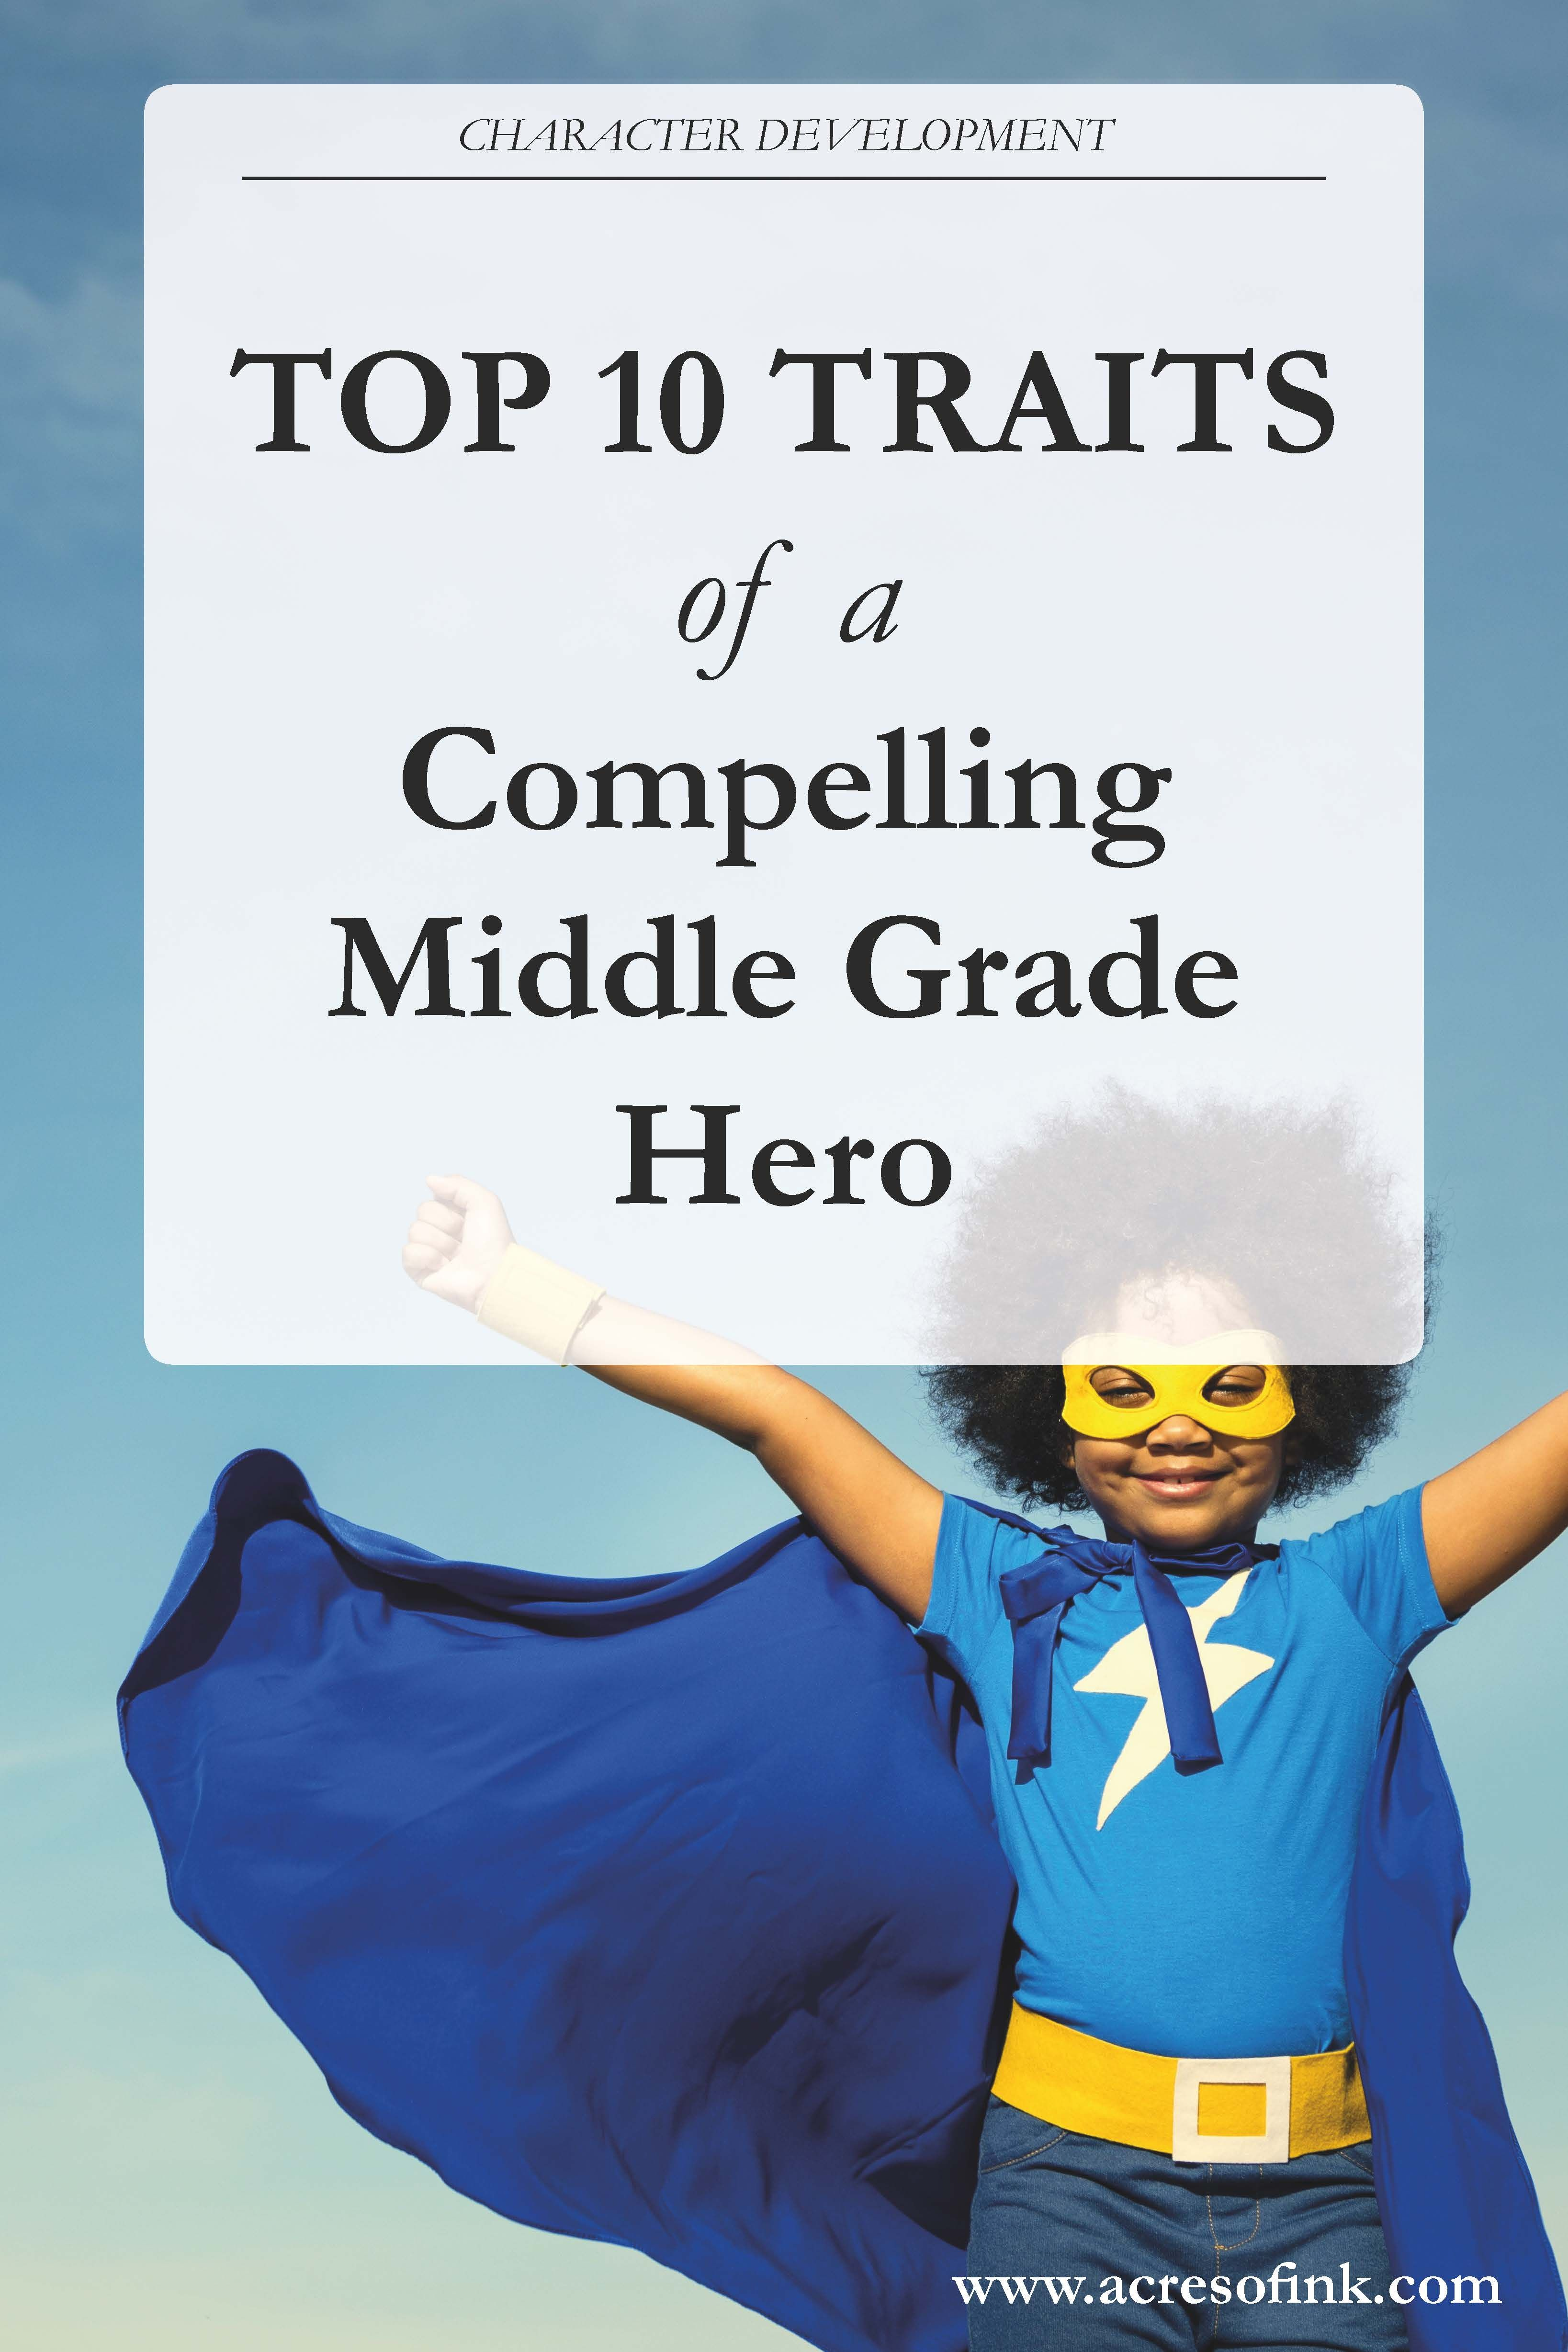 Top 10 Traits Of A Compelling Middle Grade Hero